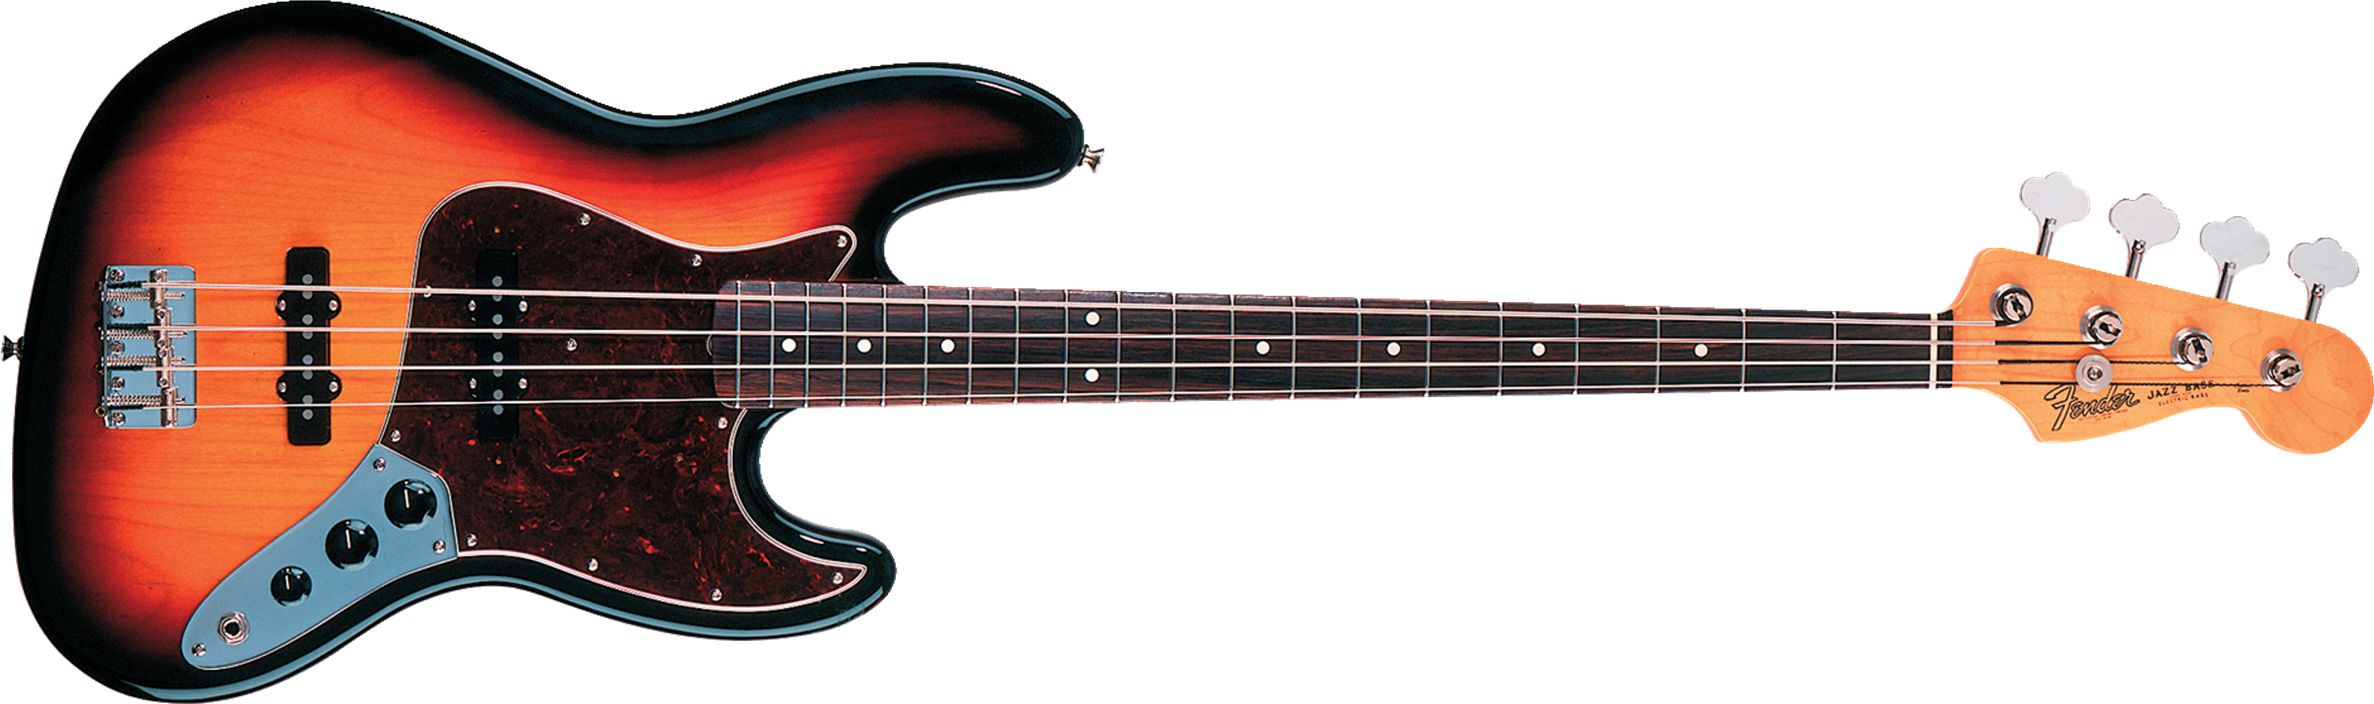 fender 39 60s jazz bass zikinf. Black Bedroom Furniture Sets. Home Design Ideas